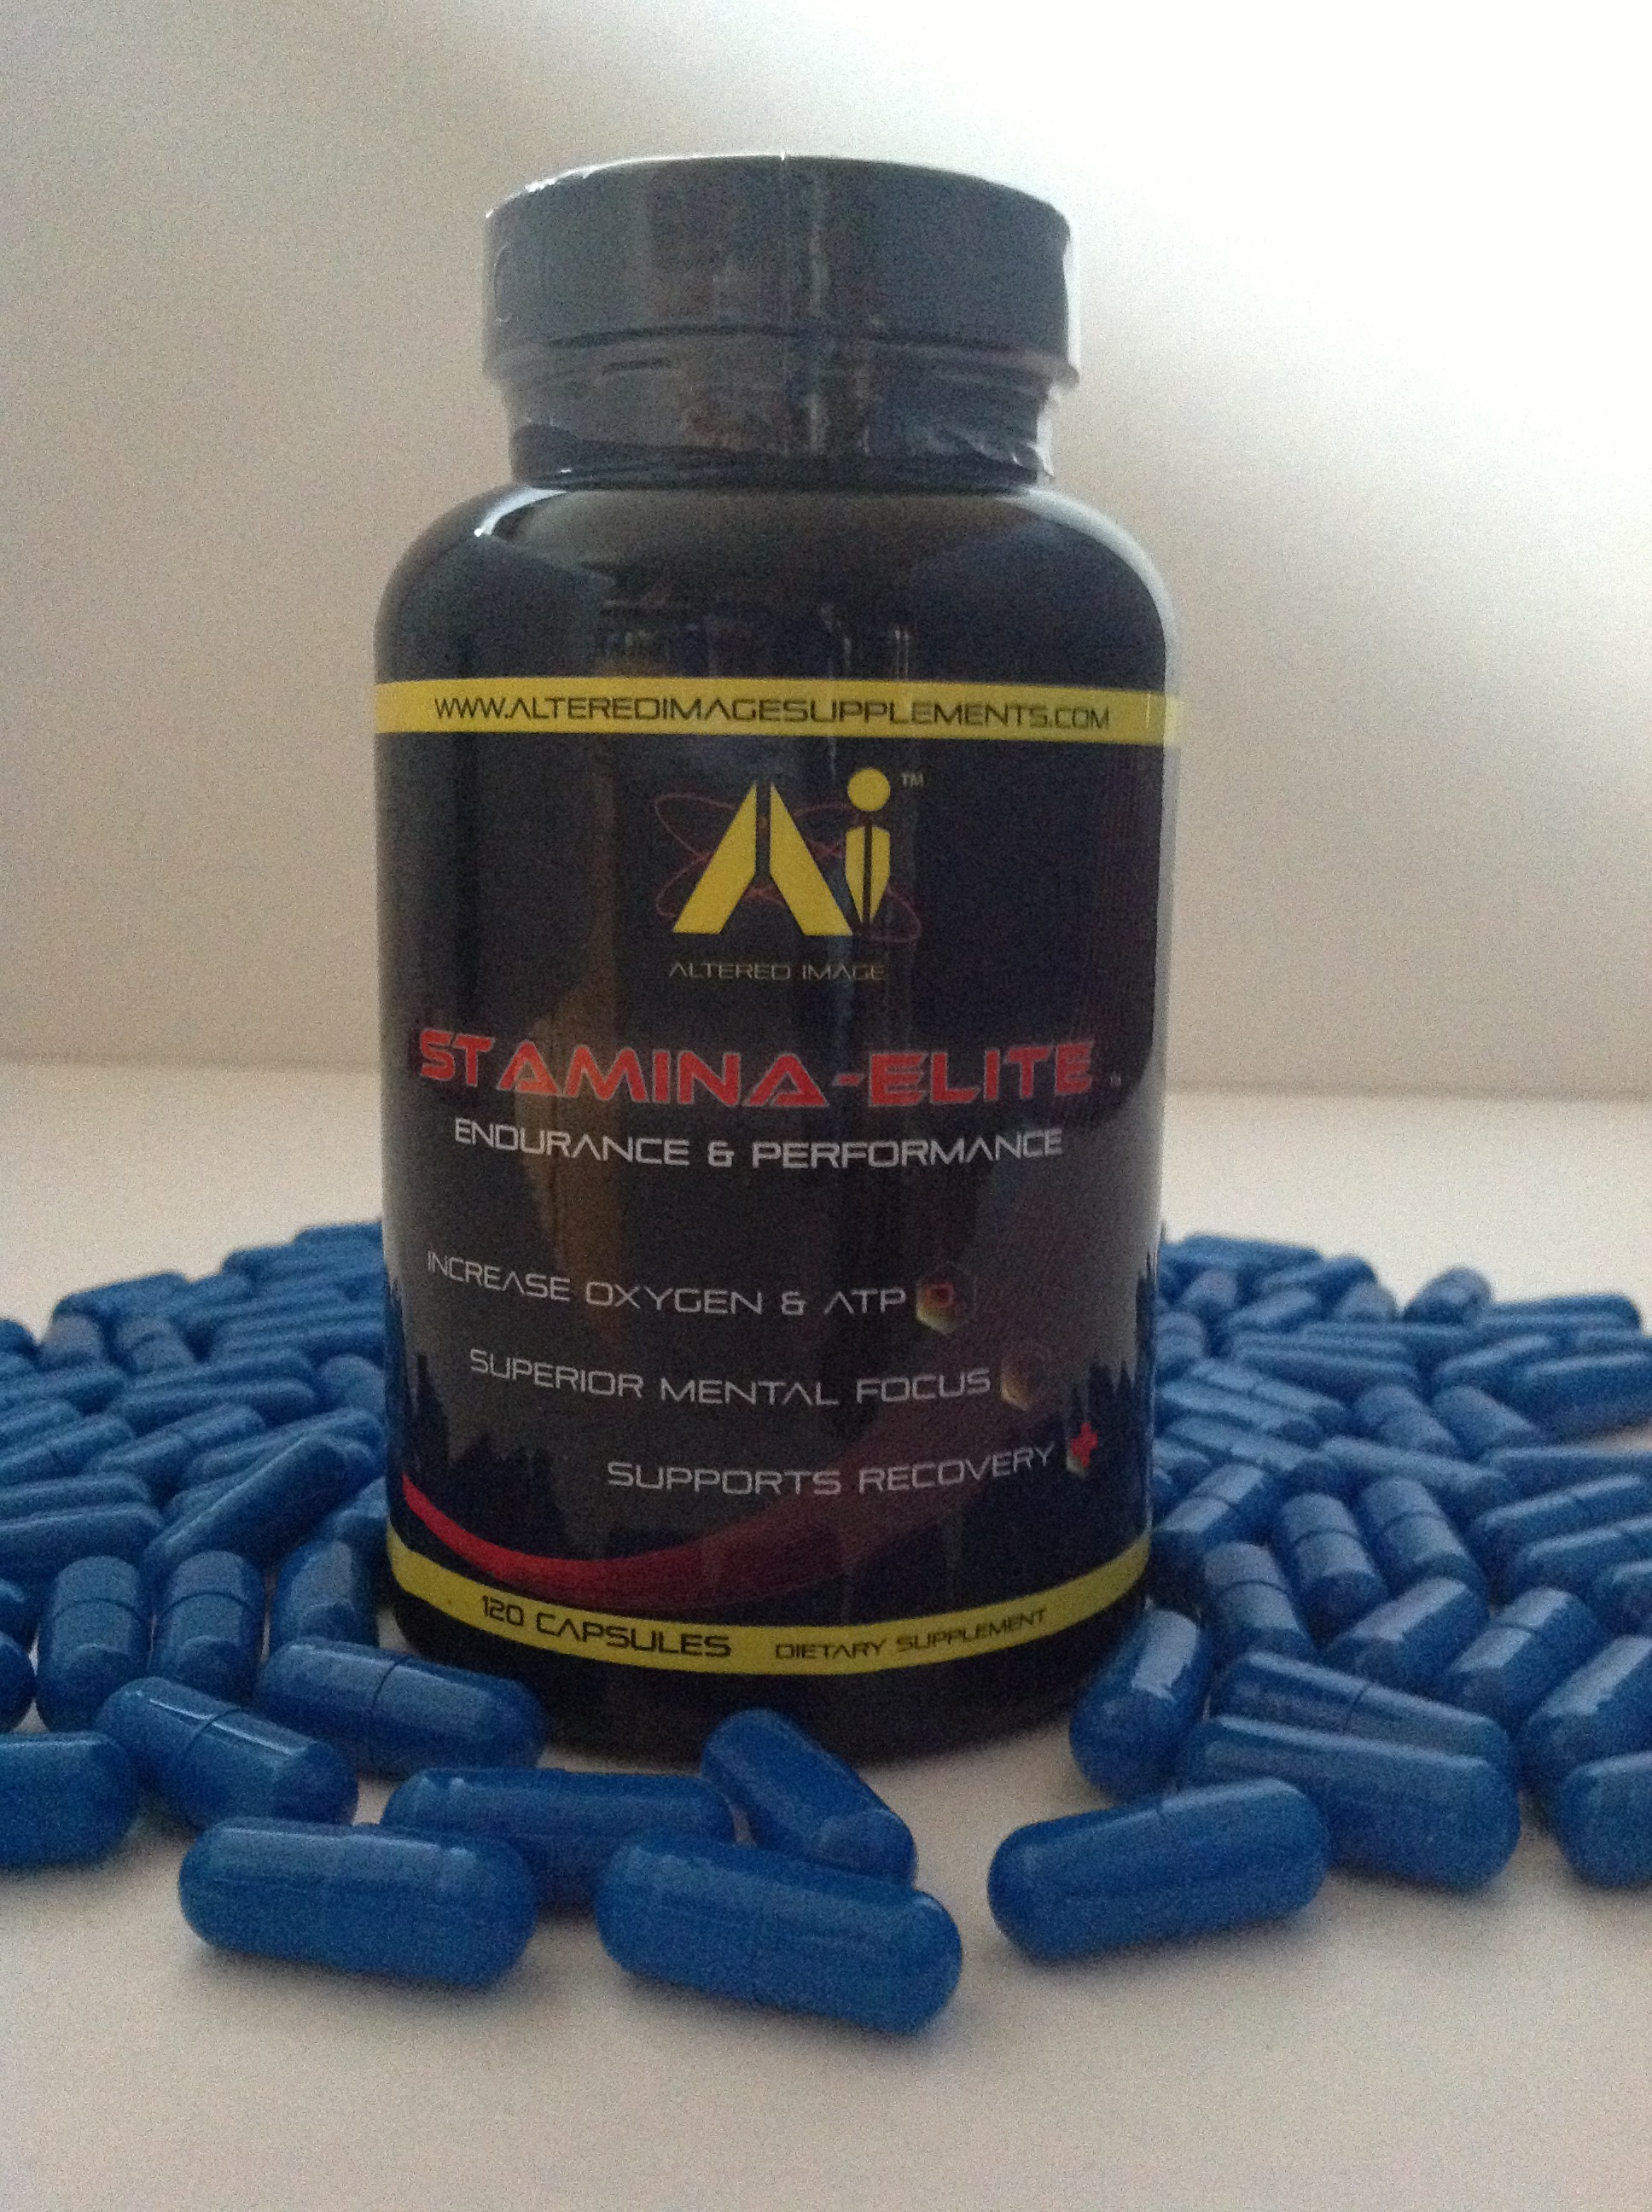 Stamina Elite: Energy & Performance, increase oxygen & ATP, Superior mental focus, Supports recovery